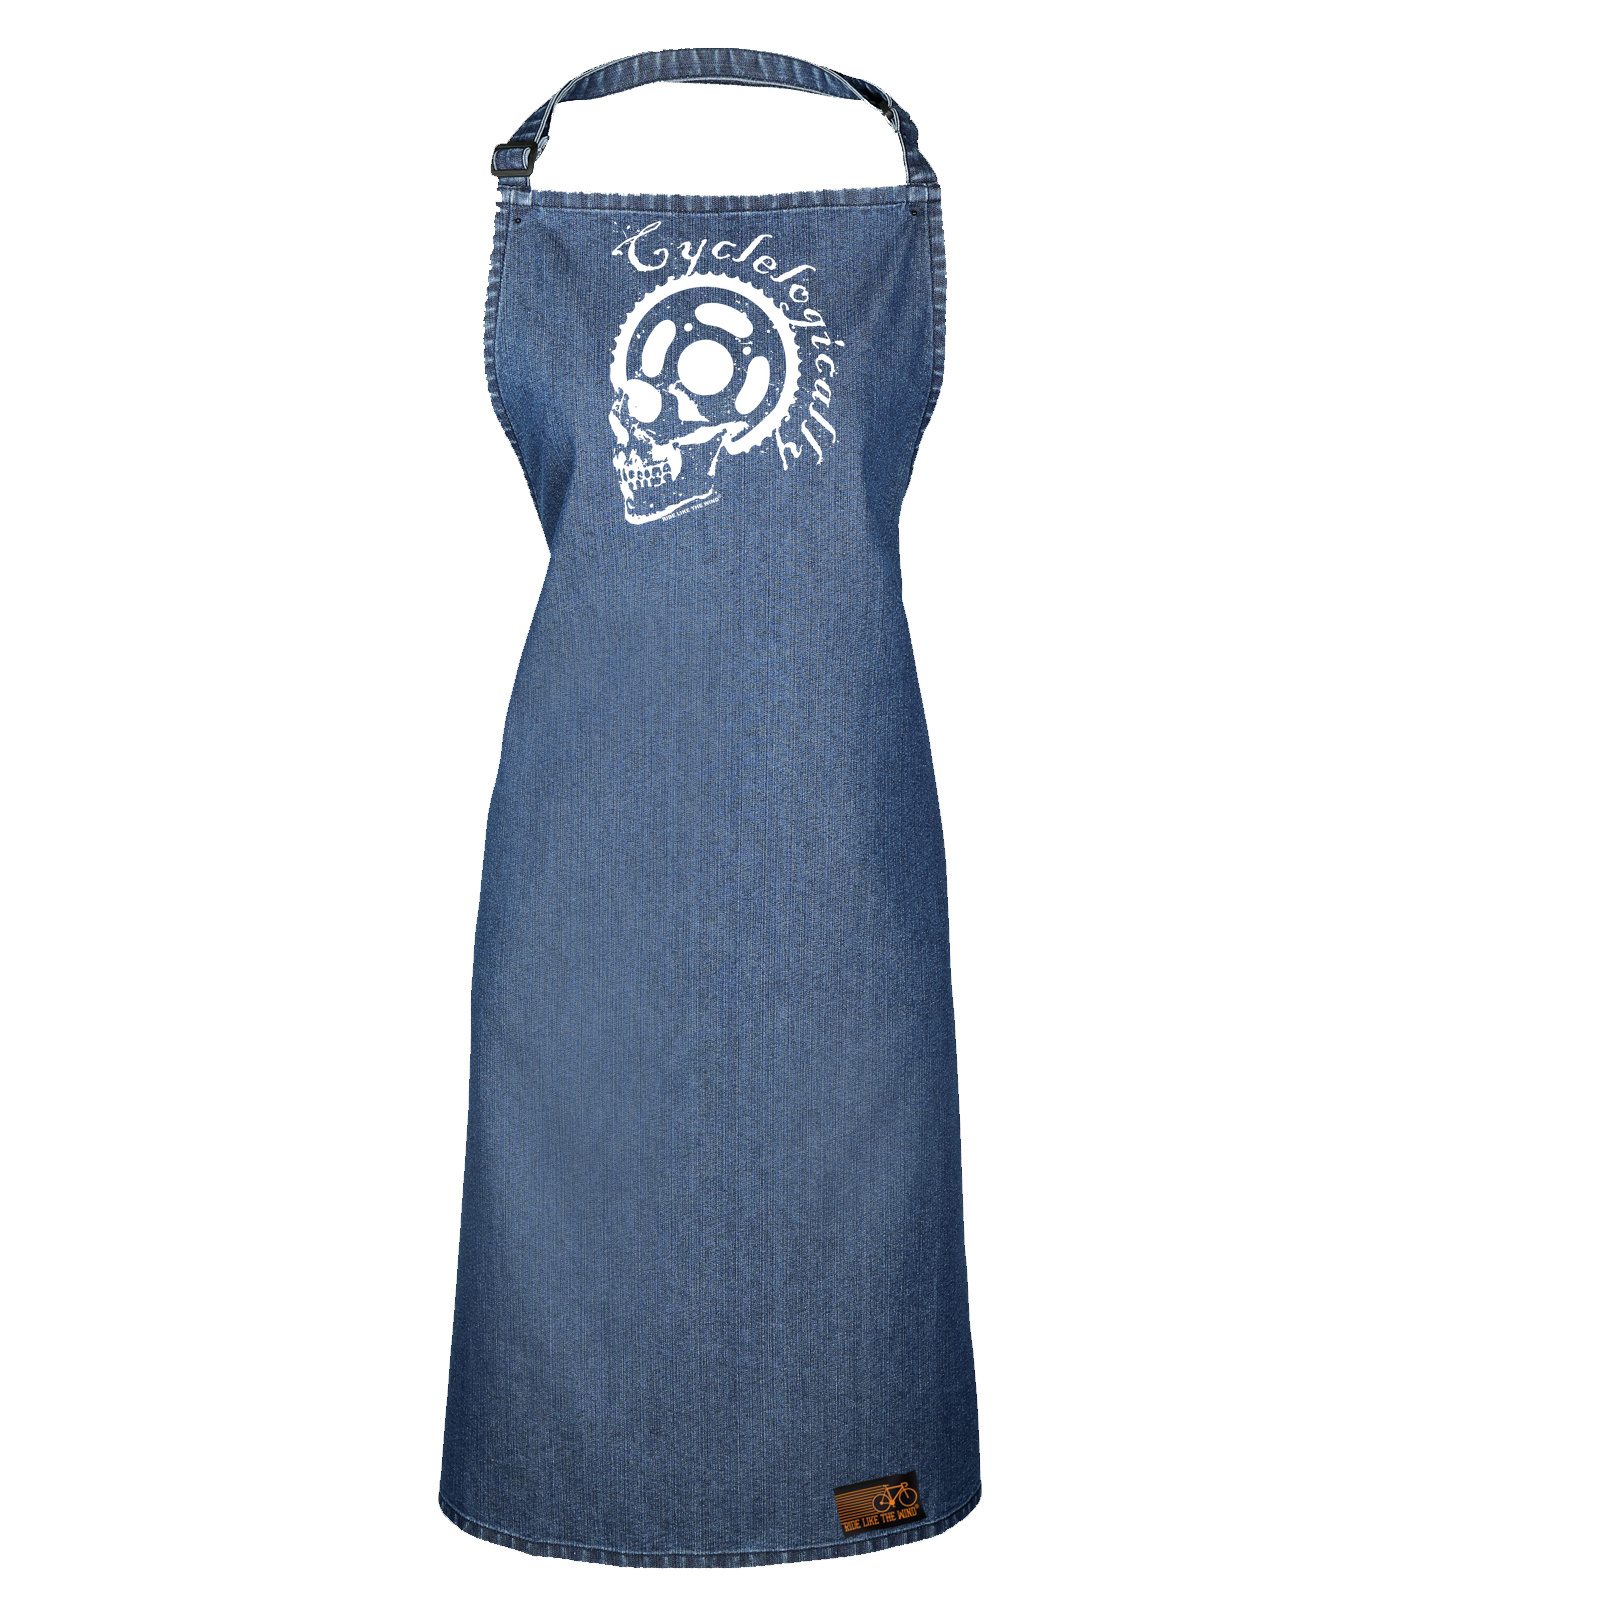 Ride-Like-The-Wind-Cyclelogically-Cycling-funny-Birthday-Cooking-PREMIER-APRON